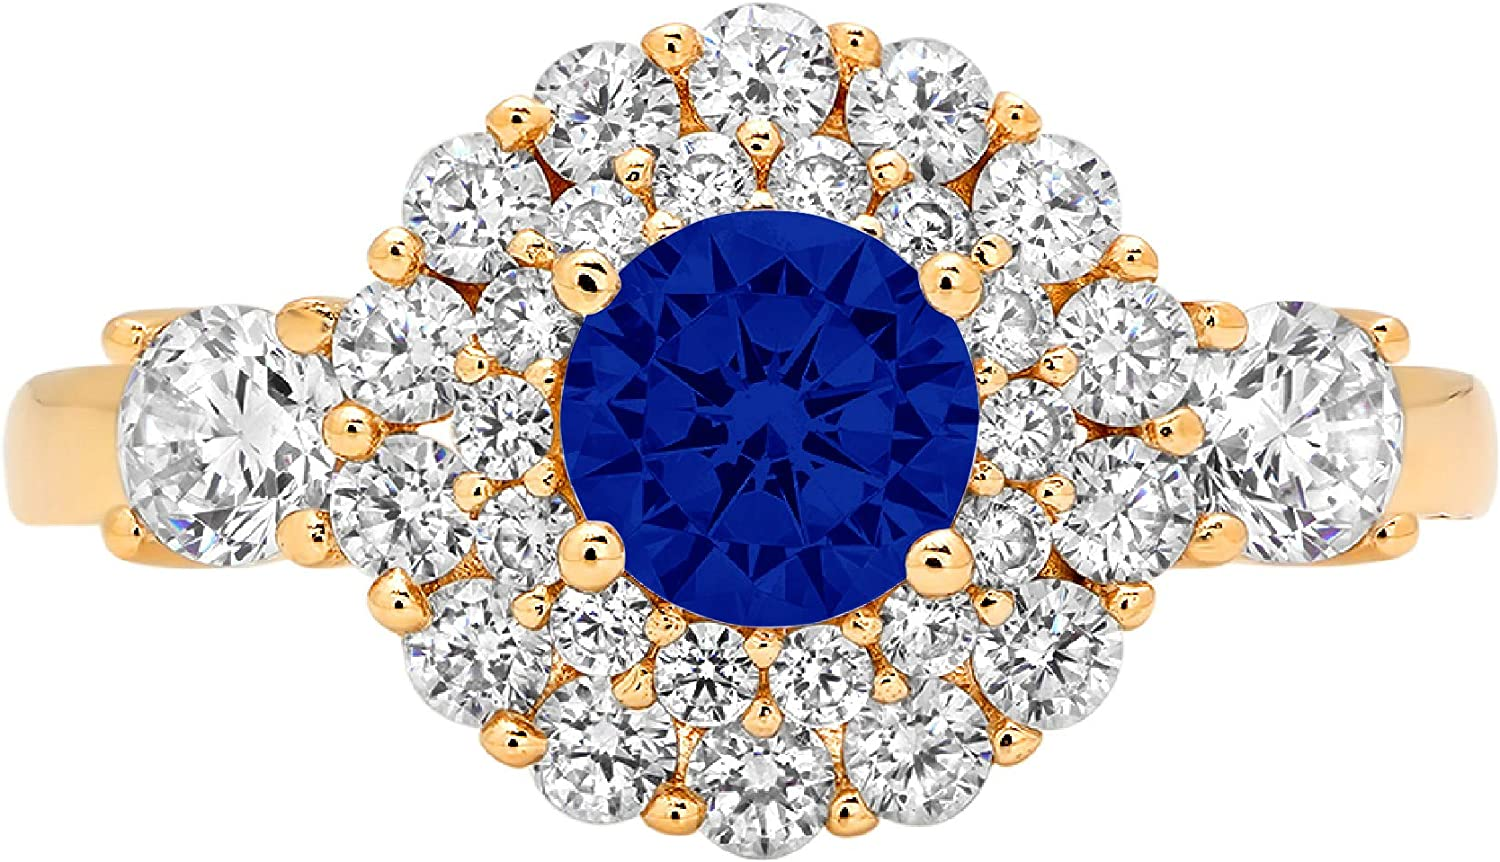 1.06ct Round Cut Double Halo Solitaire Flawless Ideal Genuine Cubic Zirconia Blue Sapphire Engagement Promise Statement Anniversary Bridal Wedding with accent Designer Ring Solid 14k Yellow Gold